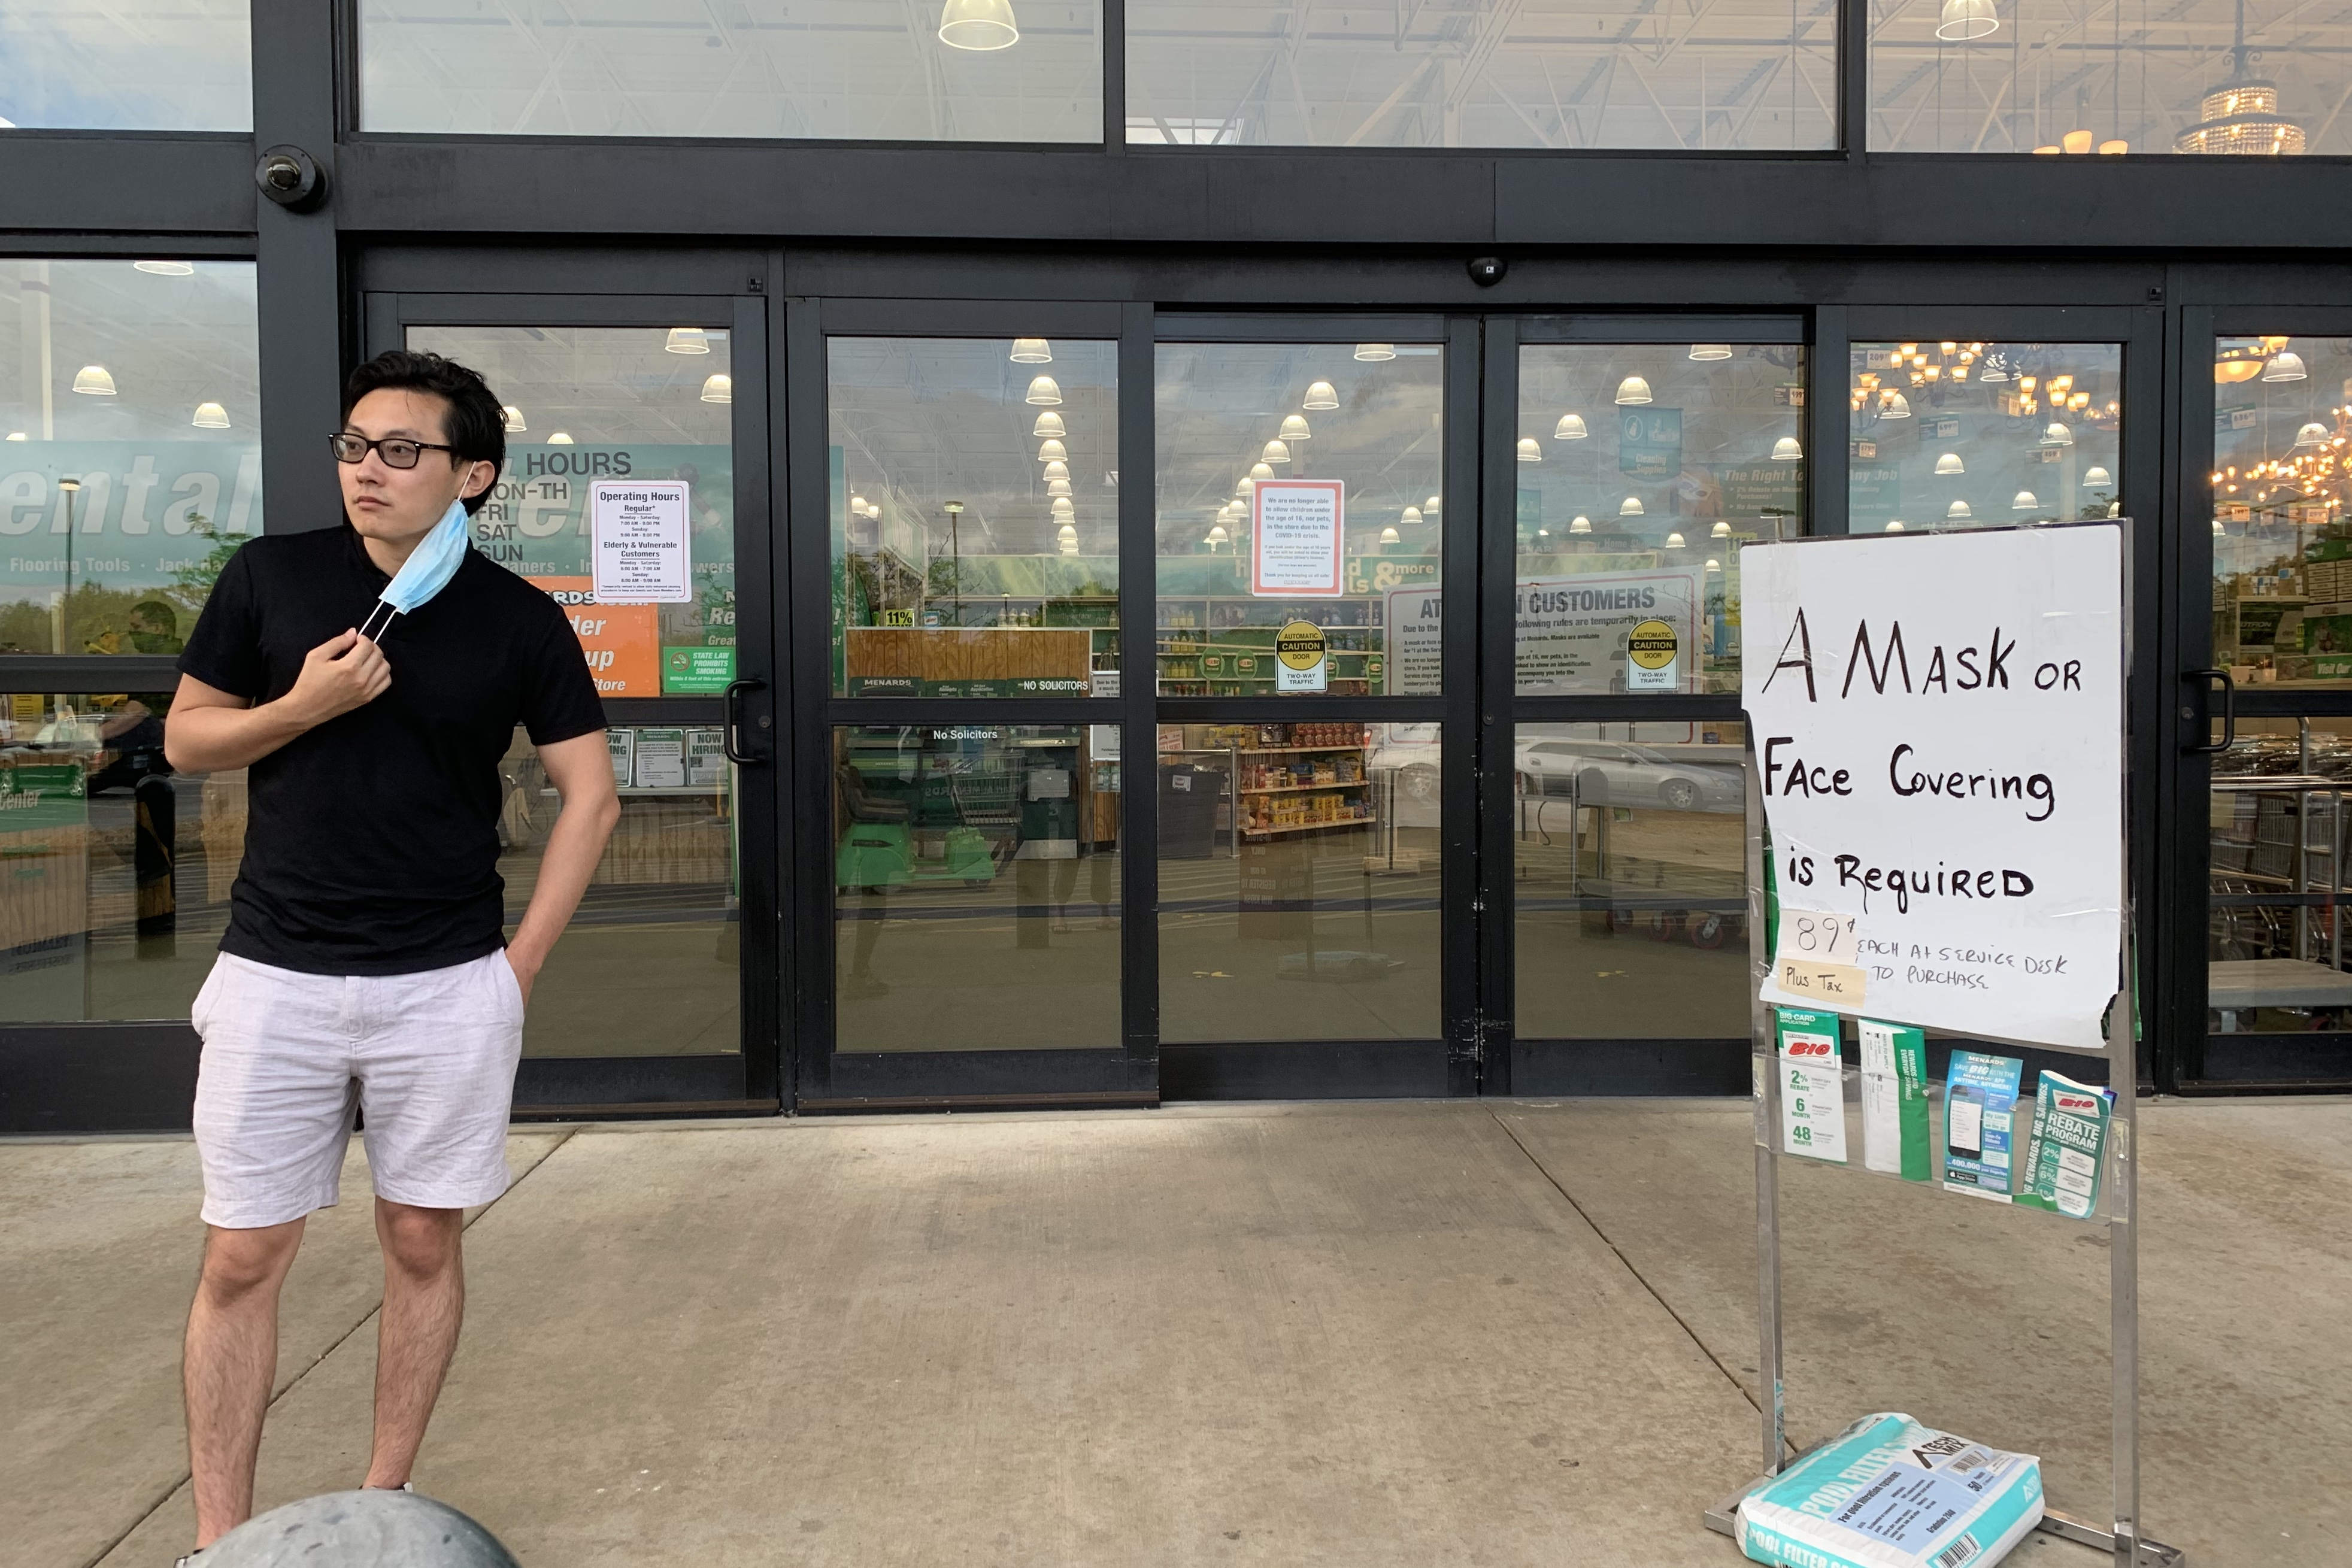 A man half-wearing a medical mask stands outside Menard's.